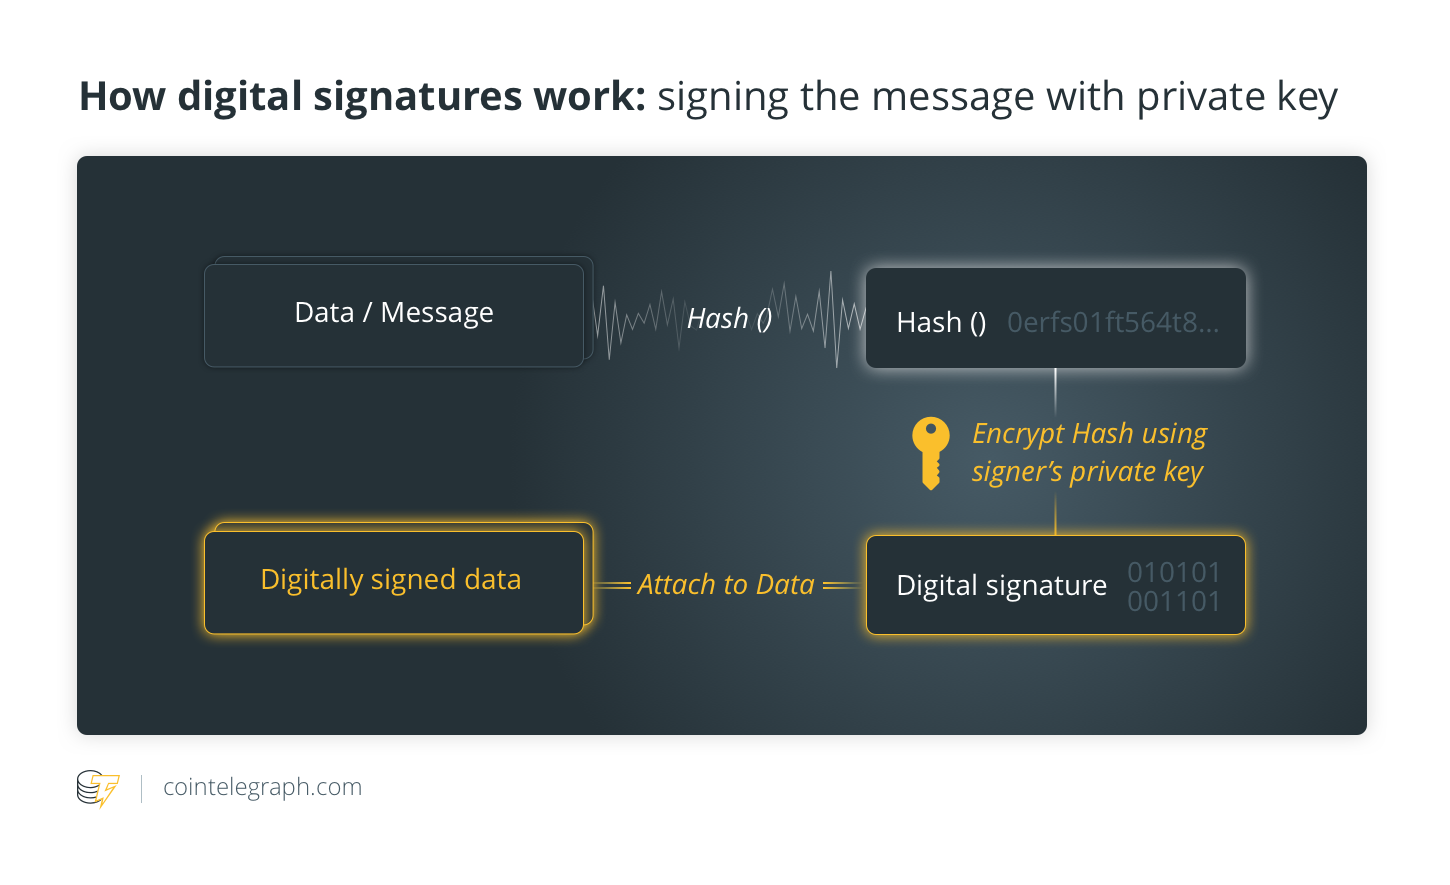 How digital signatures work: signing the message with private key